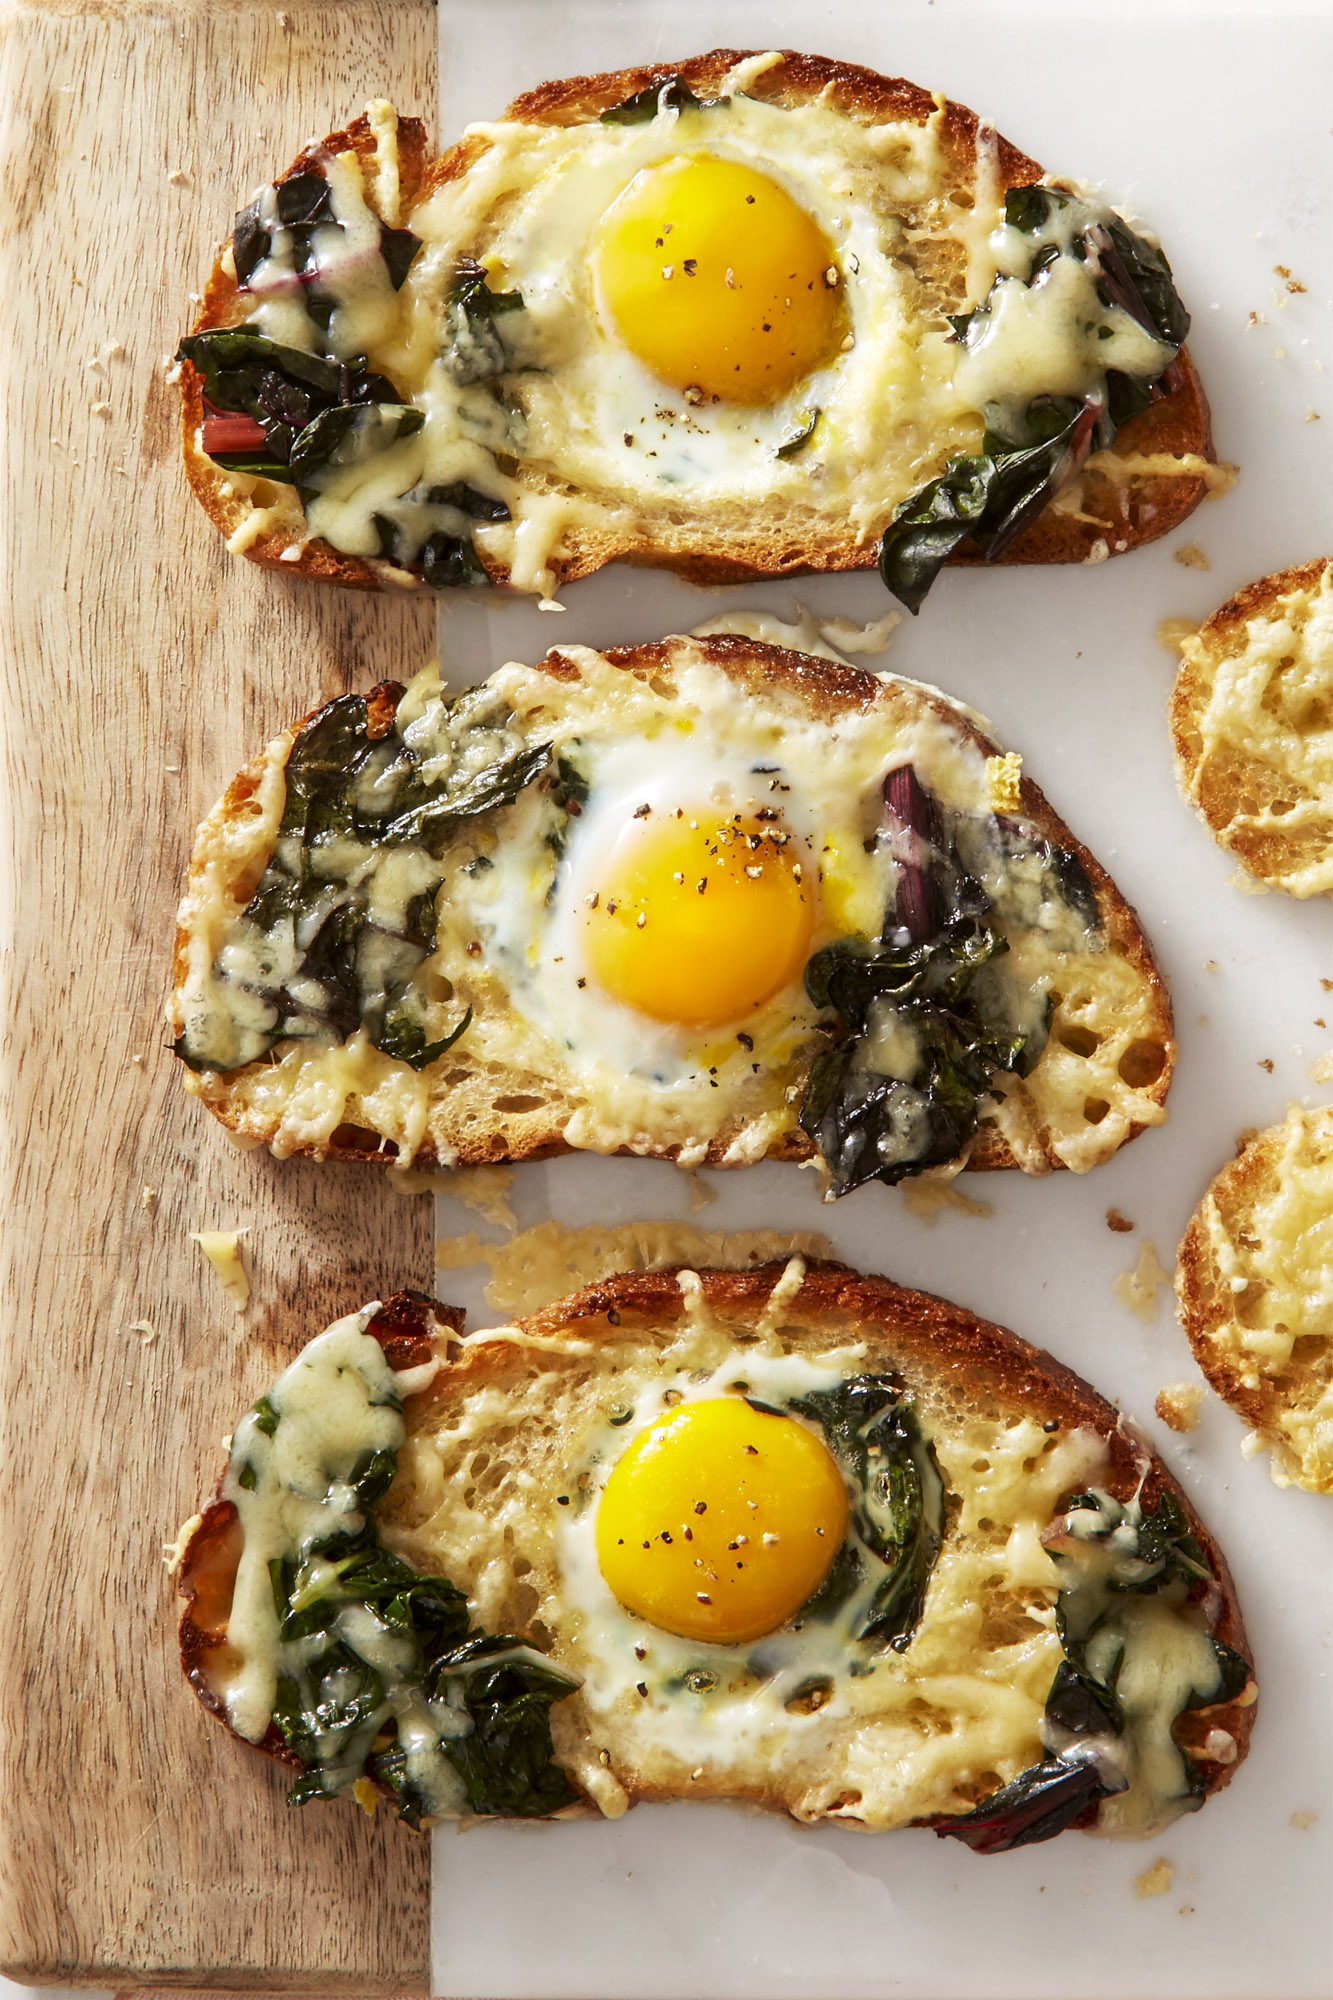 18 Brunch Recipes To Start Off The New Year Right